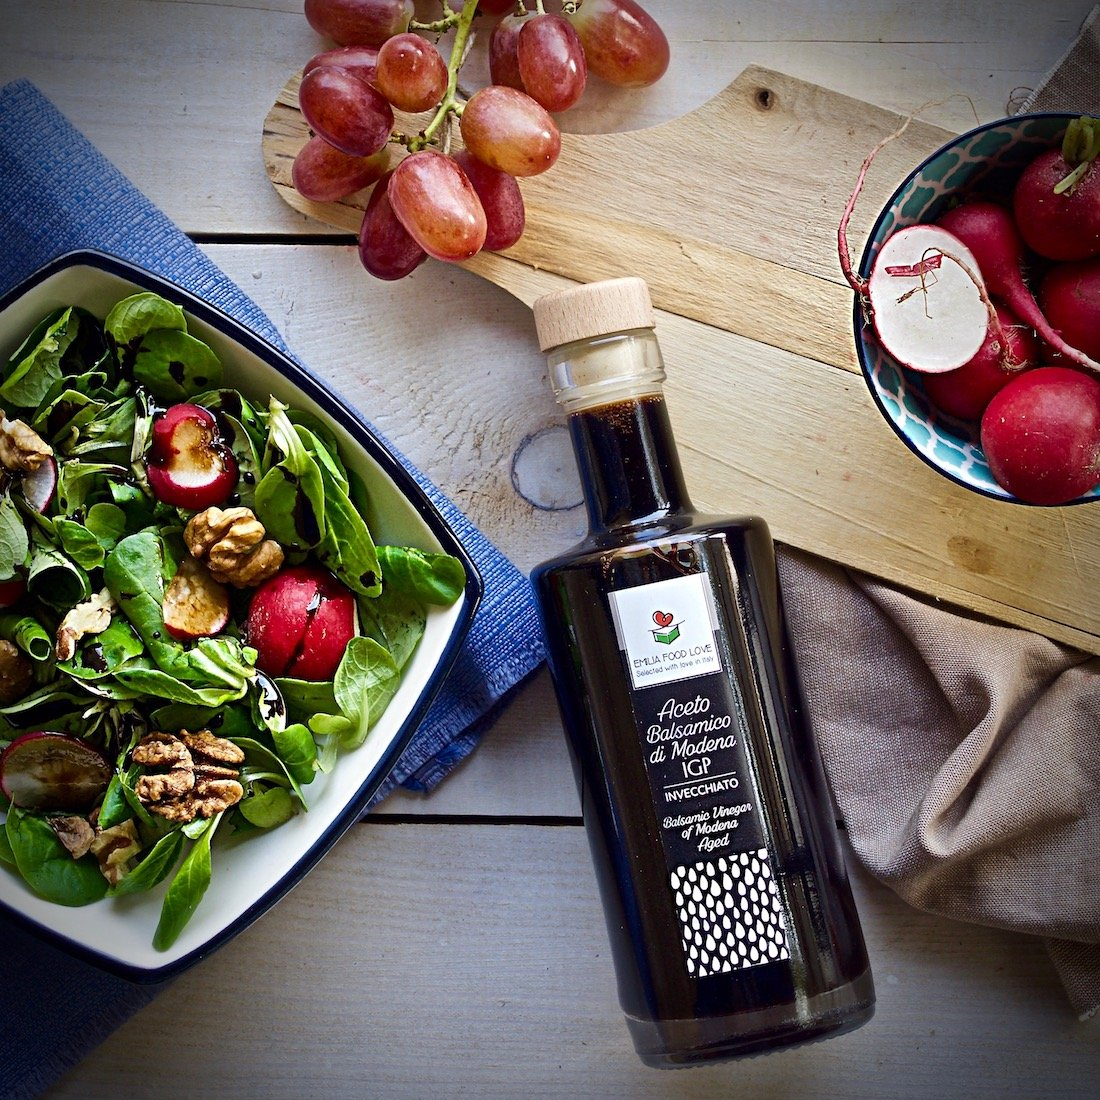 Balsamic Vinegar of Modena IGP AGED - Made in Italy - EMILIA FOOD LOVE - Selected with Love in Italy - Aceto Balsamico di Modena IGP Invecchiato by EMILIA FOOD LOVE (Image #7)